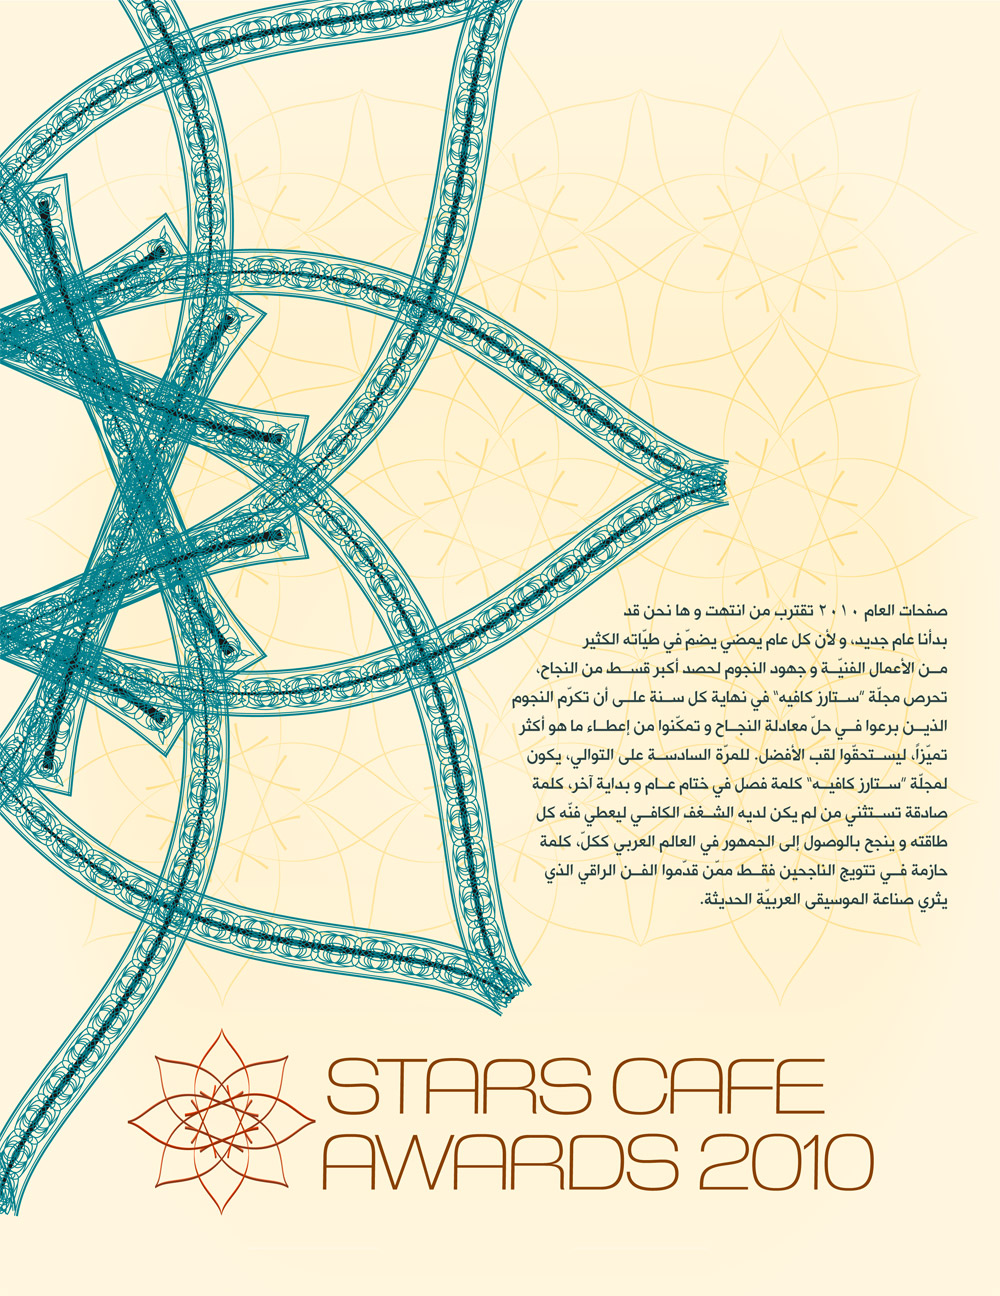 Stars Cafe Awards